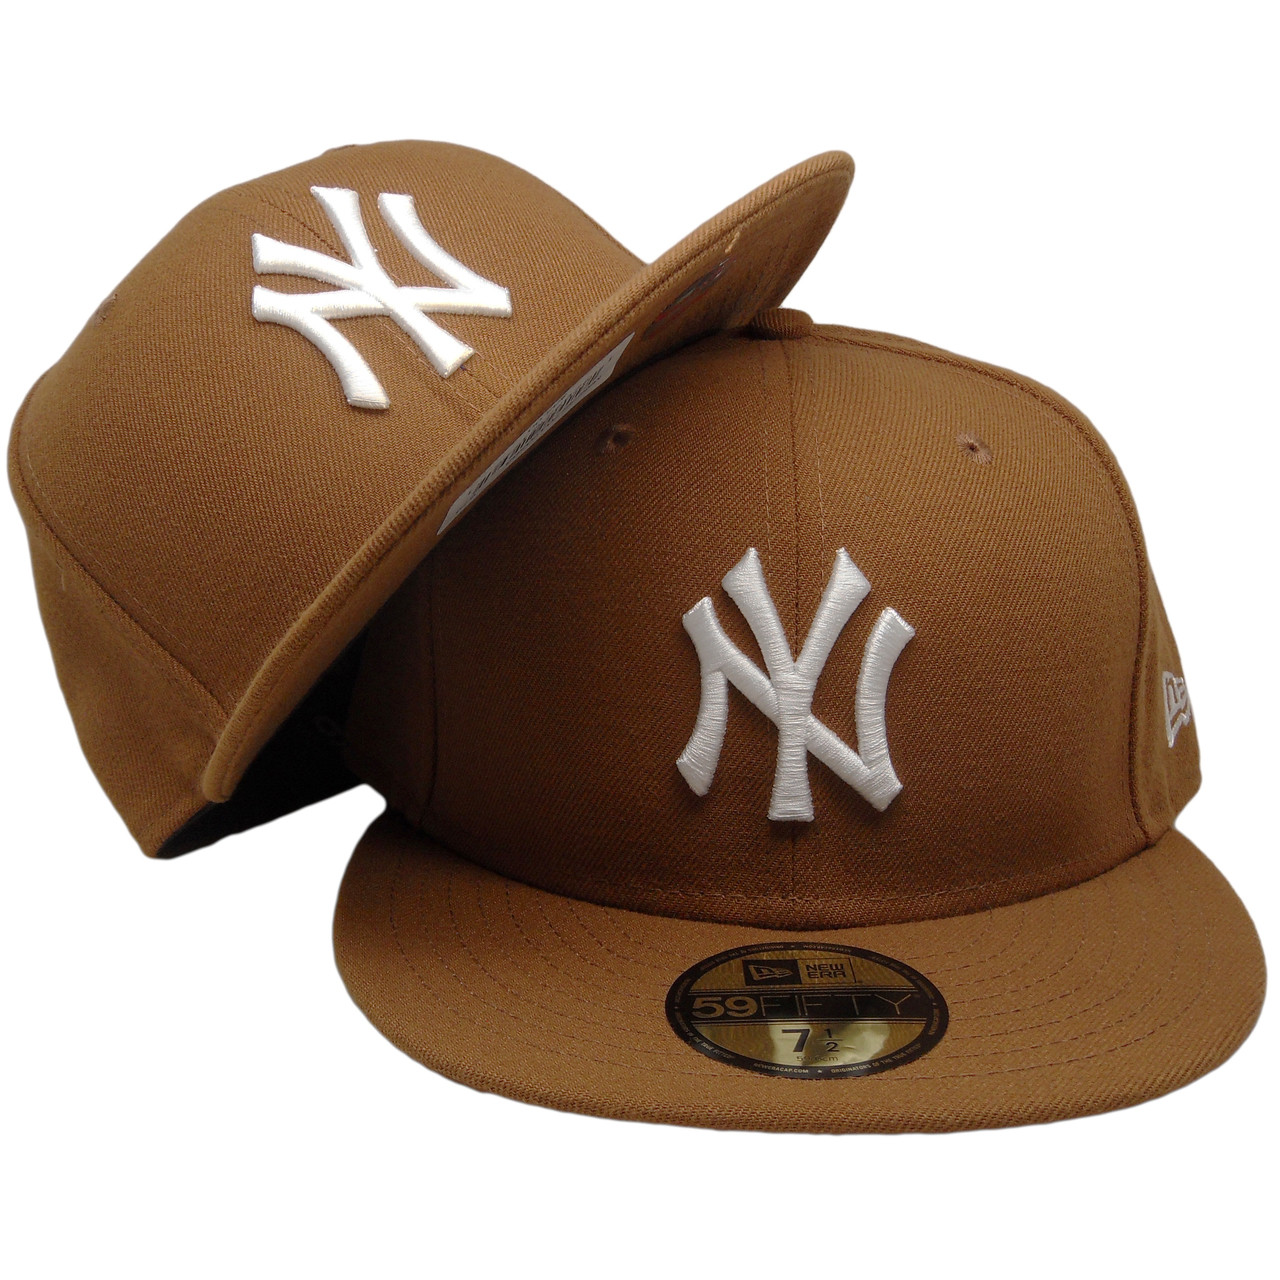 21a9514d4d8550 New York Yankees New Era Custom Basic Fitted Hat - Toasted Peanut, White -  ECapsUnlimited.com